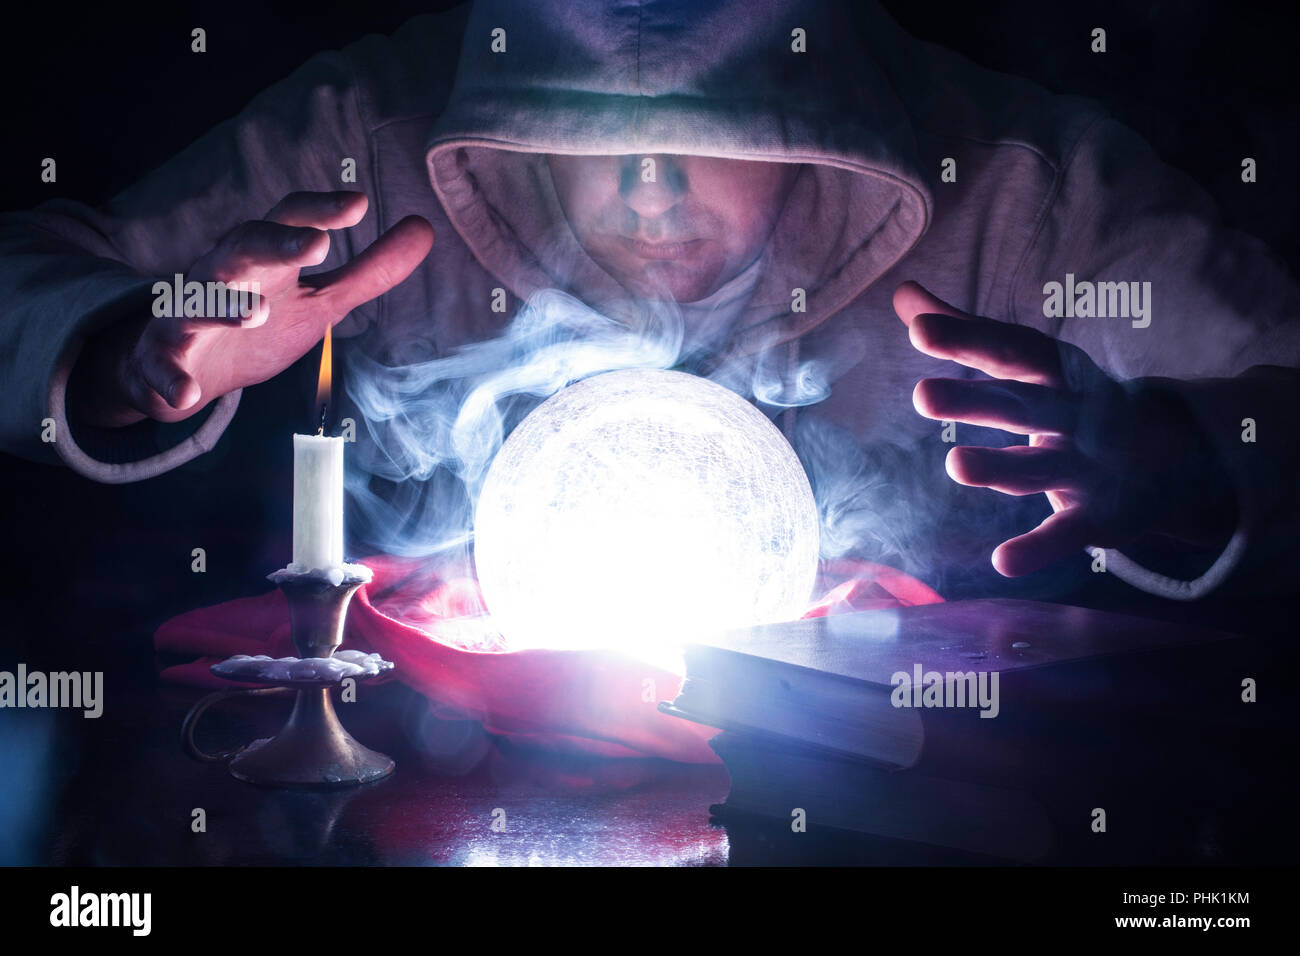 Wizard with hood and lights smoke magic crystal ball on desk with candle in candlestick and old books predicting the future by looking into ball - Stock Image